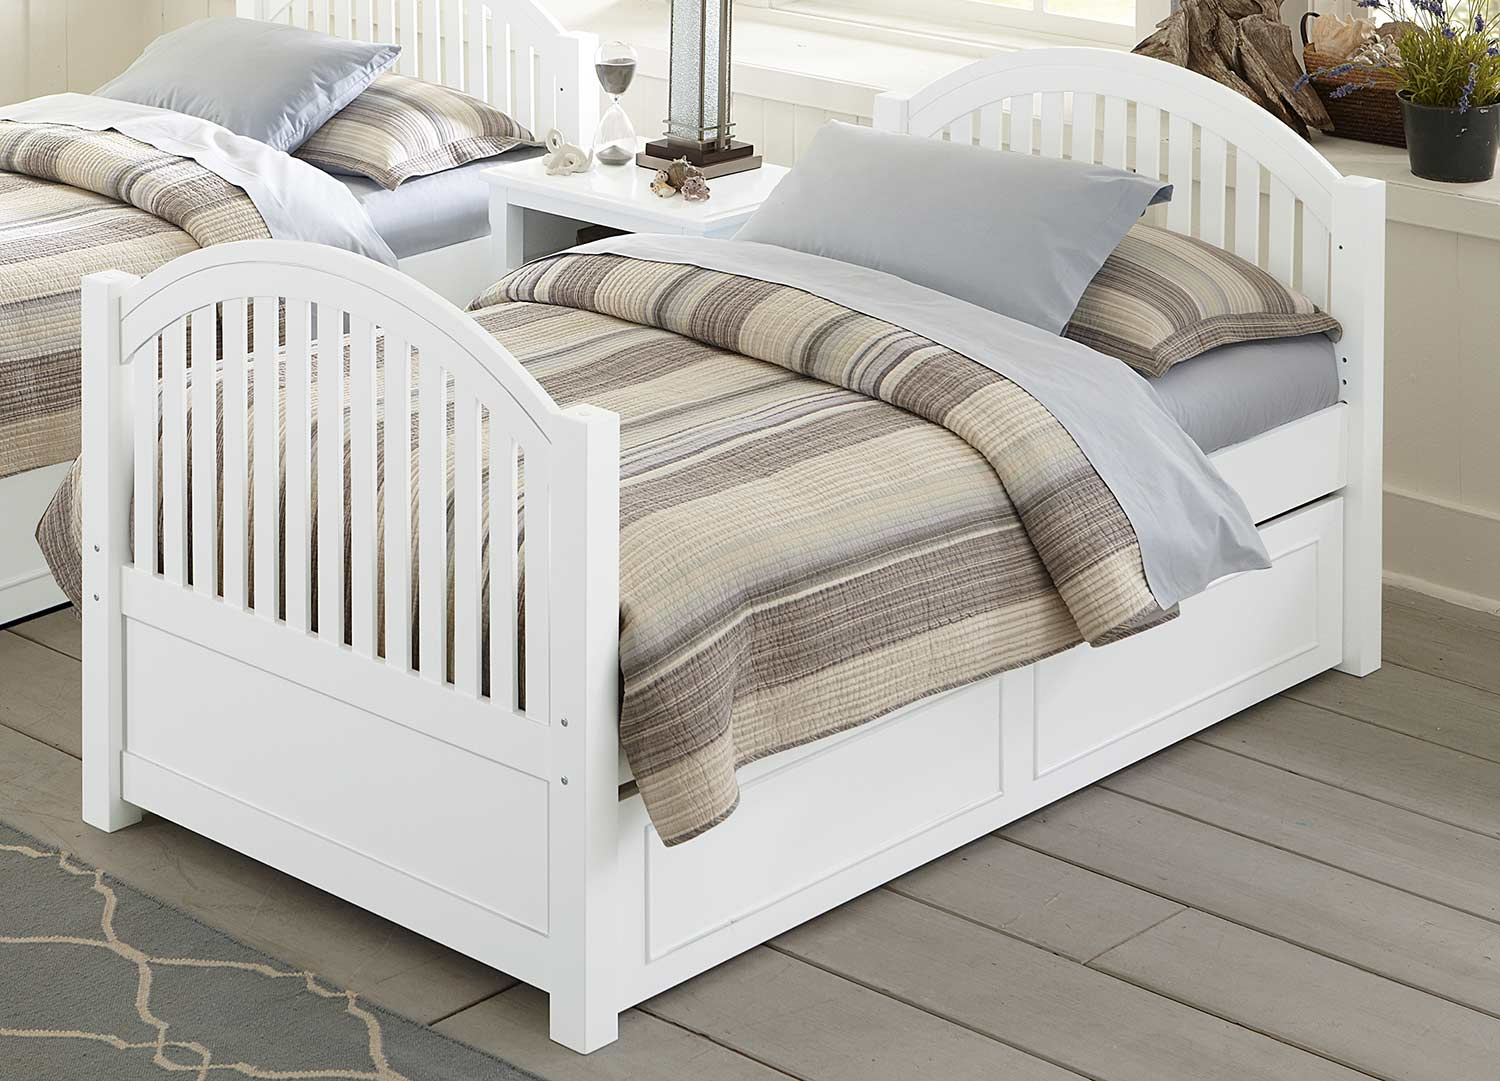 NE Kids Lake House Adrian Twin Bed With Trundle - White